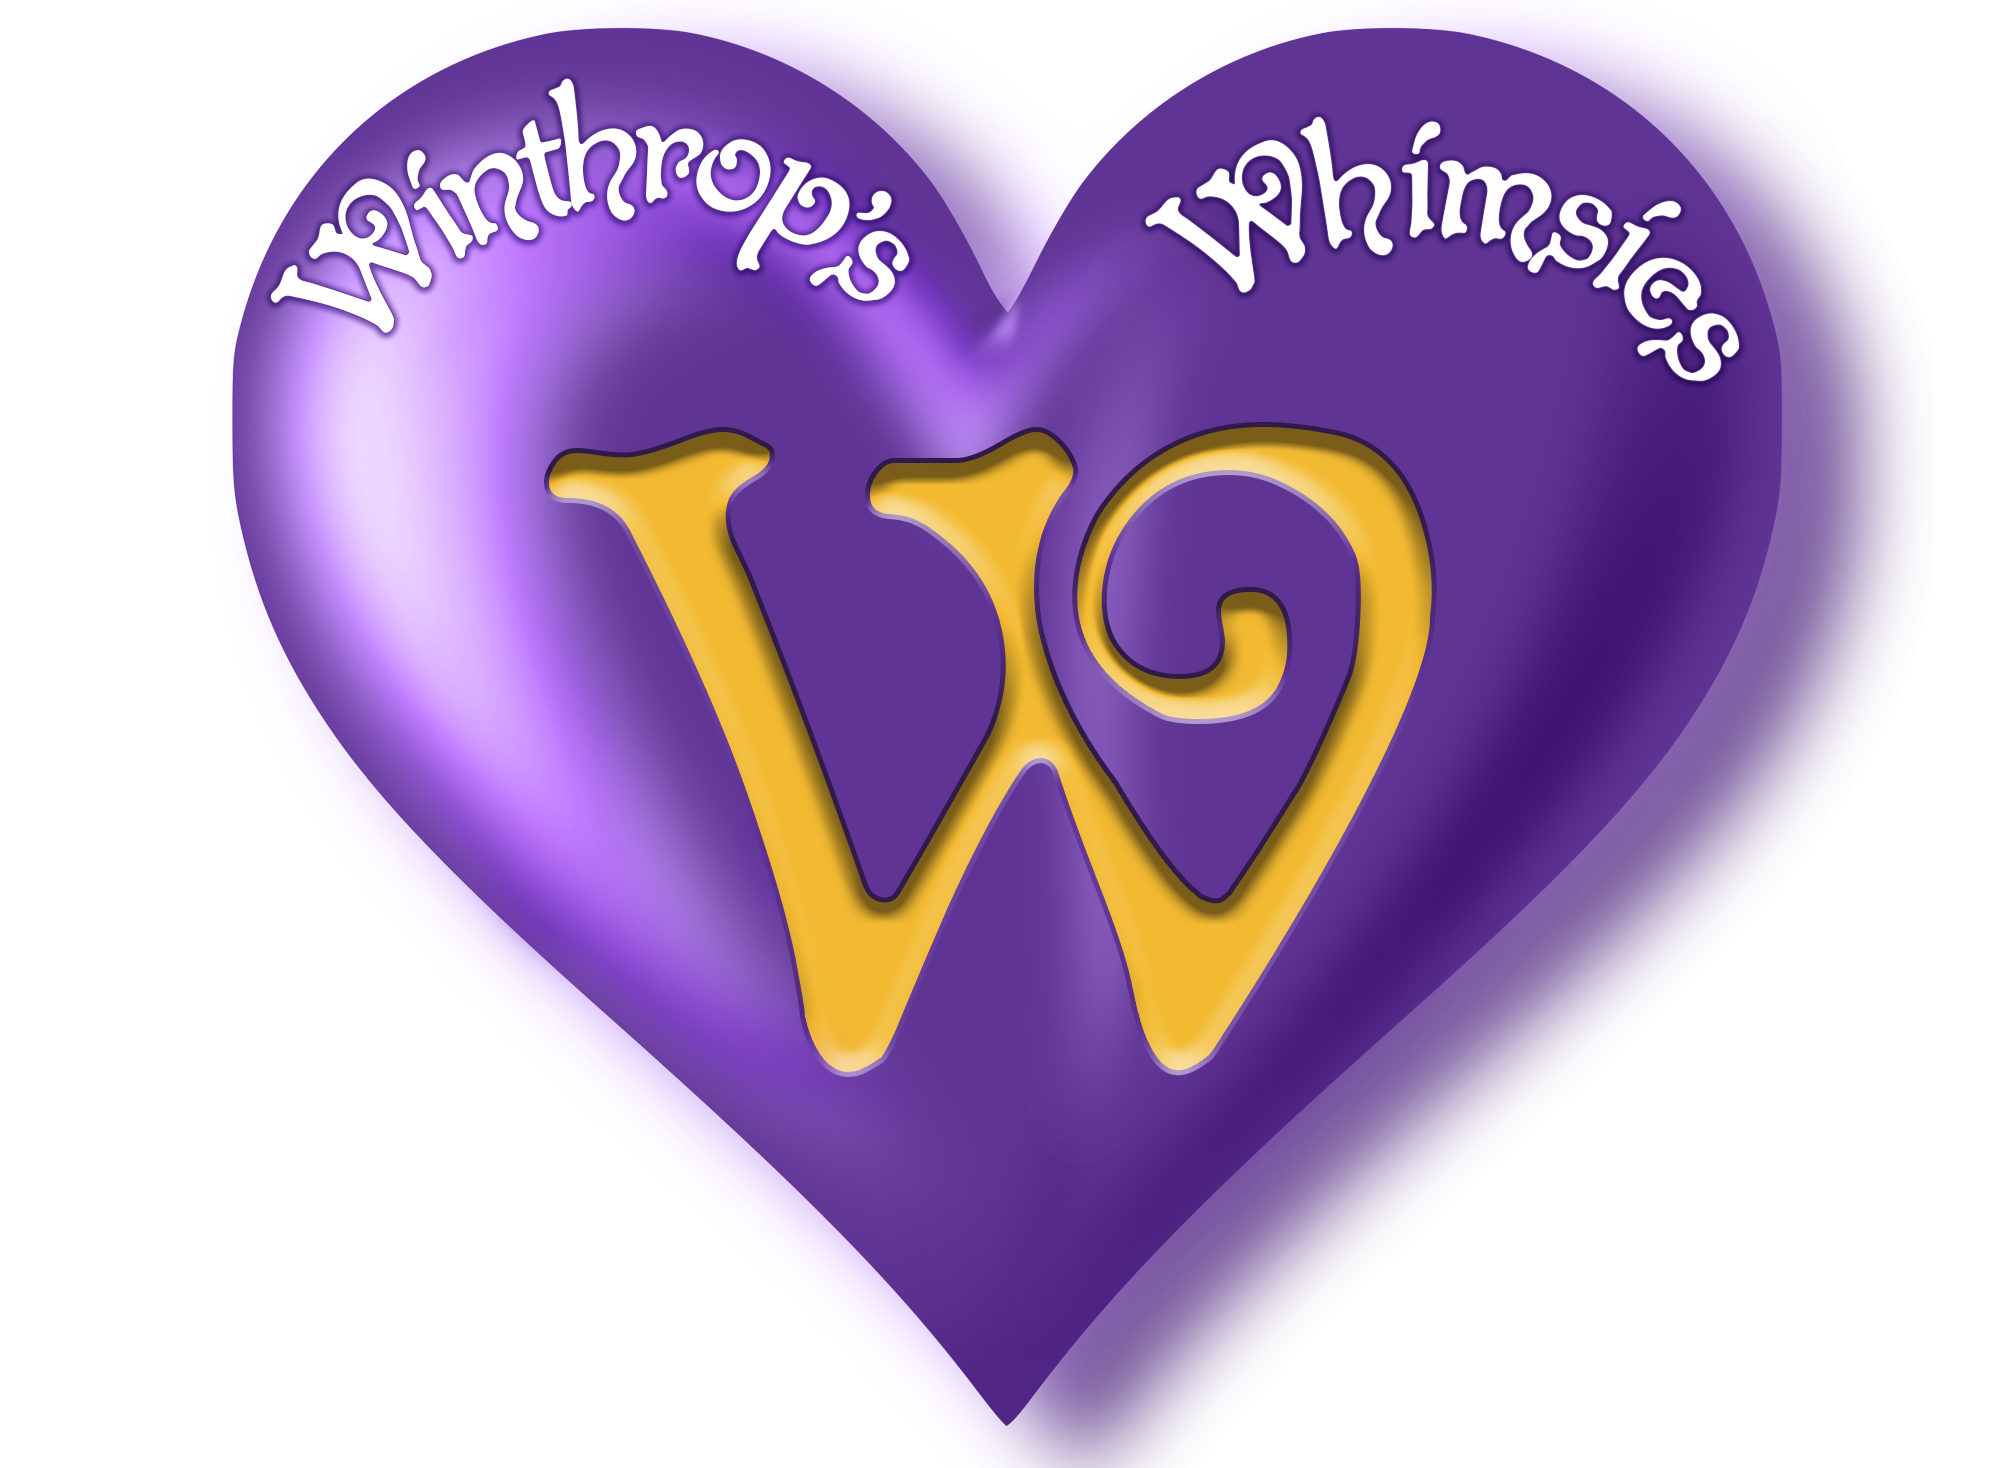 Winthrop's Whimsies